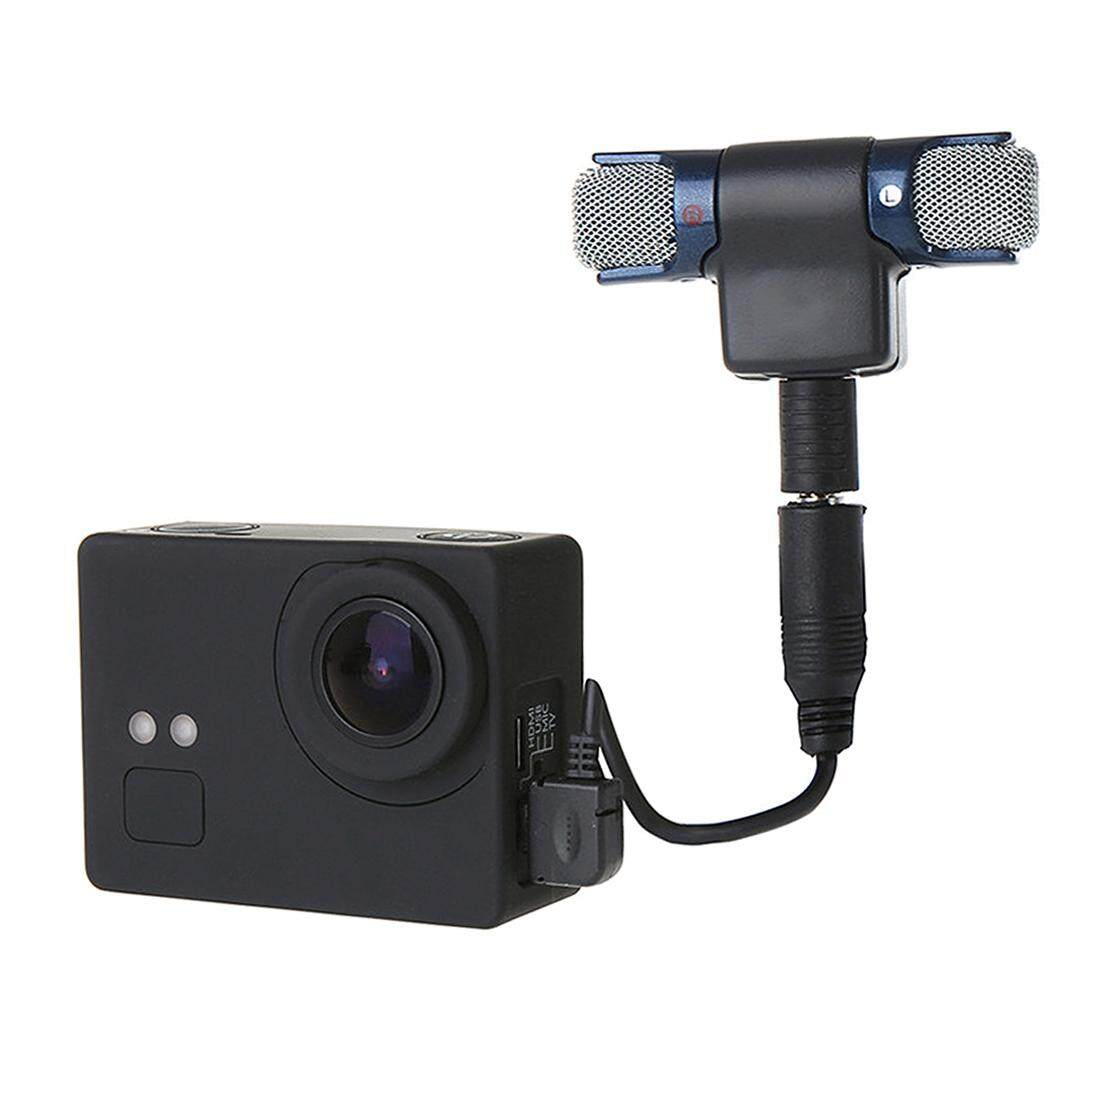 External Mini Stereo Mic Microphone With 17cm 35mm To Usb 10pin Kabel Adapter Cable For Gopro Hero 3 Thb 287 5mm 10 Pin